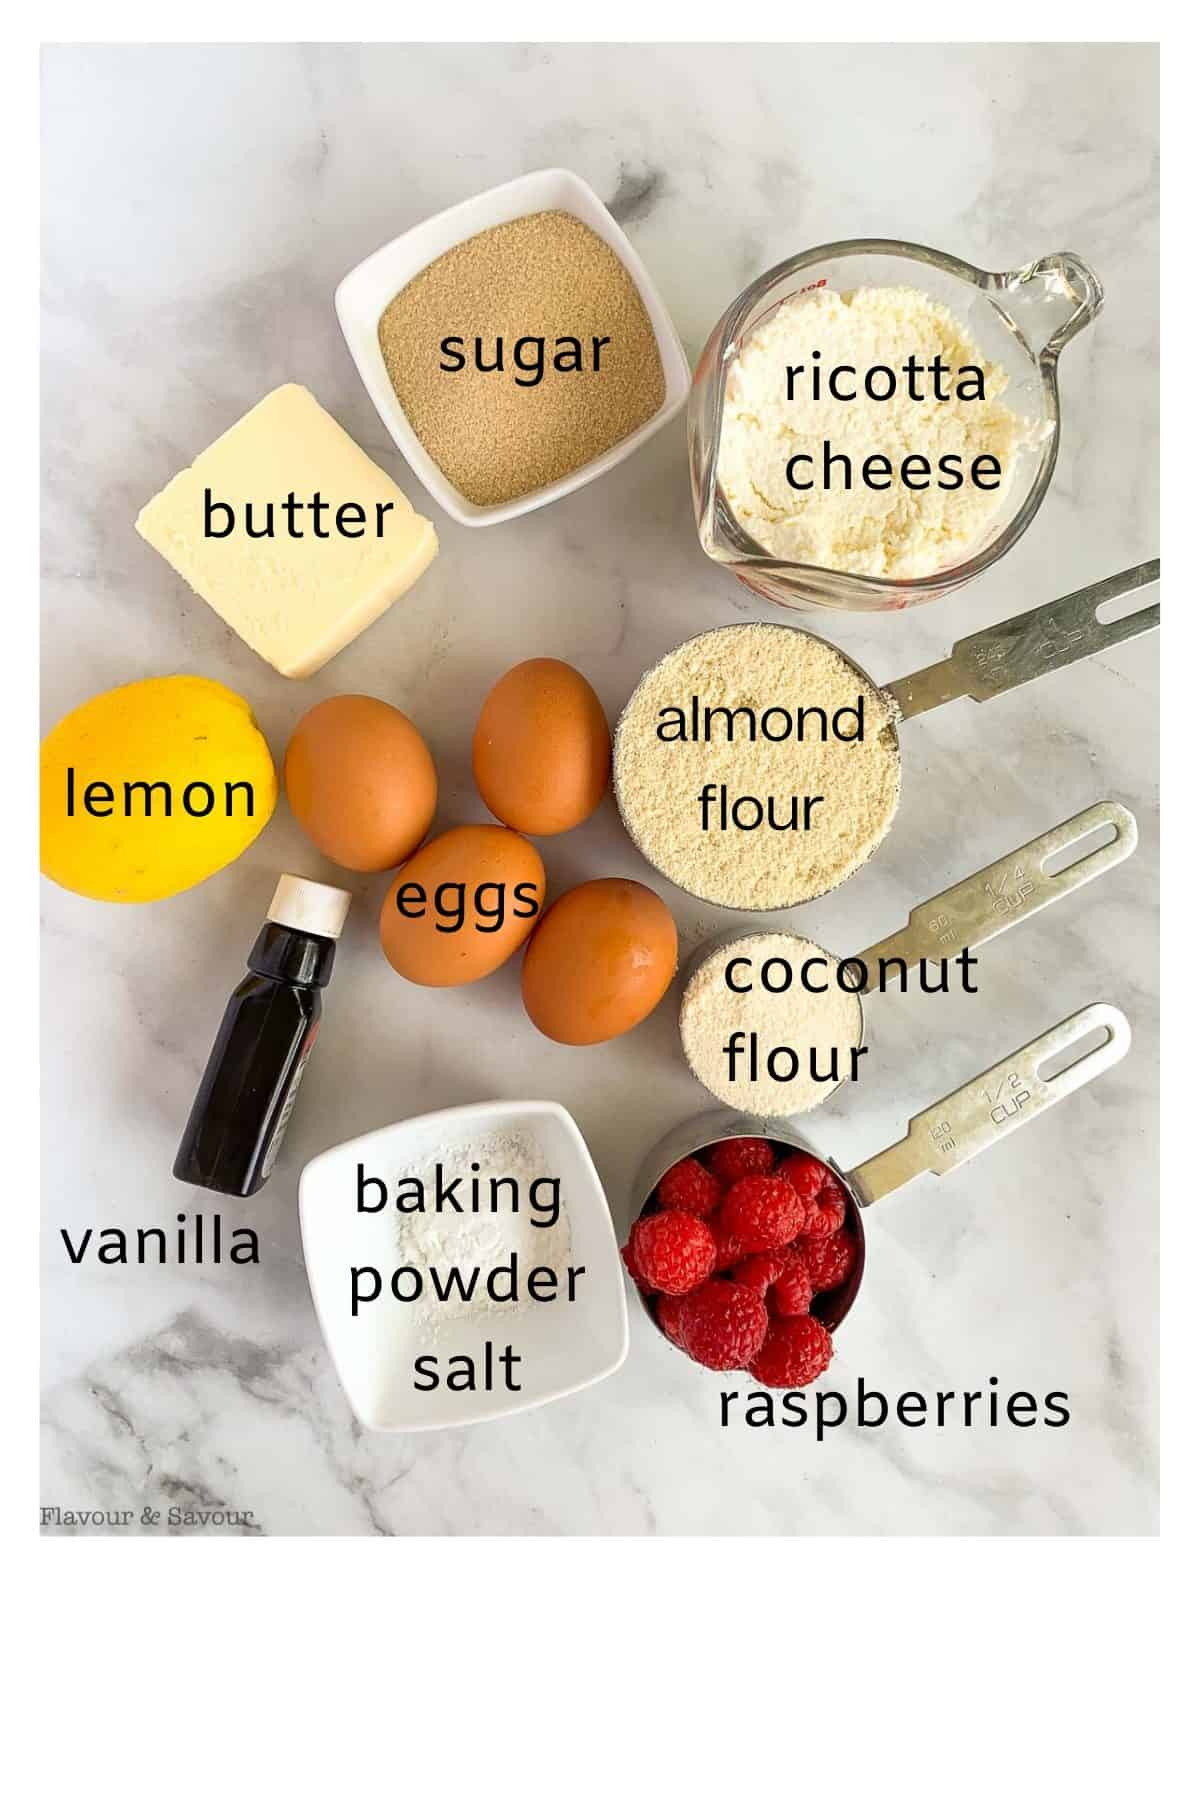 Ingredients with labels for Raspberry Ricotta Cake